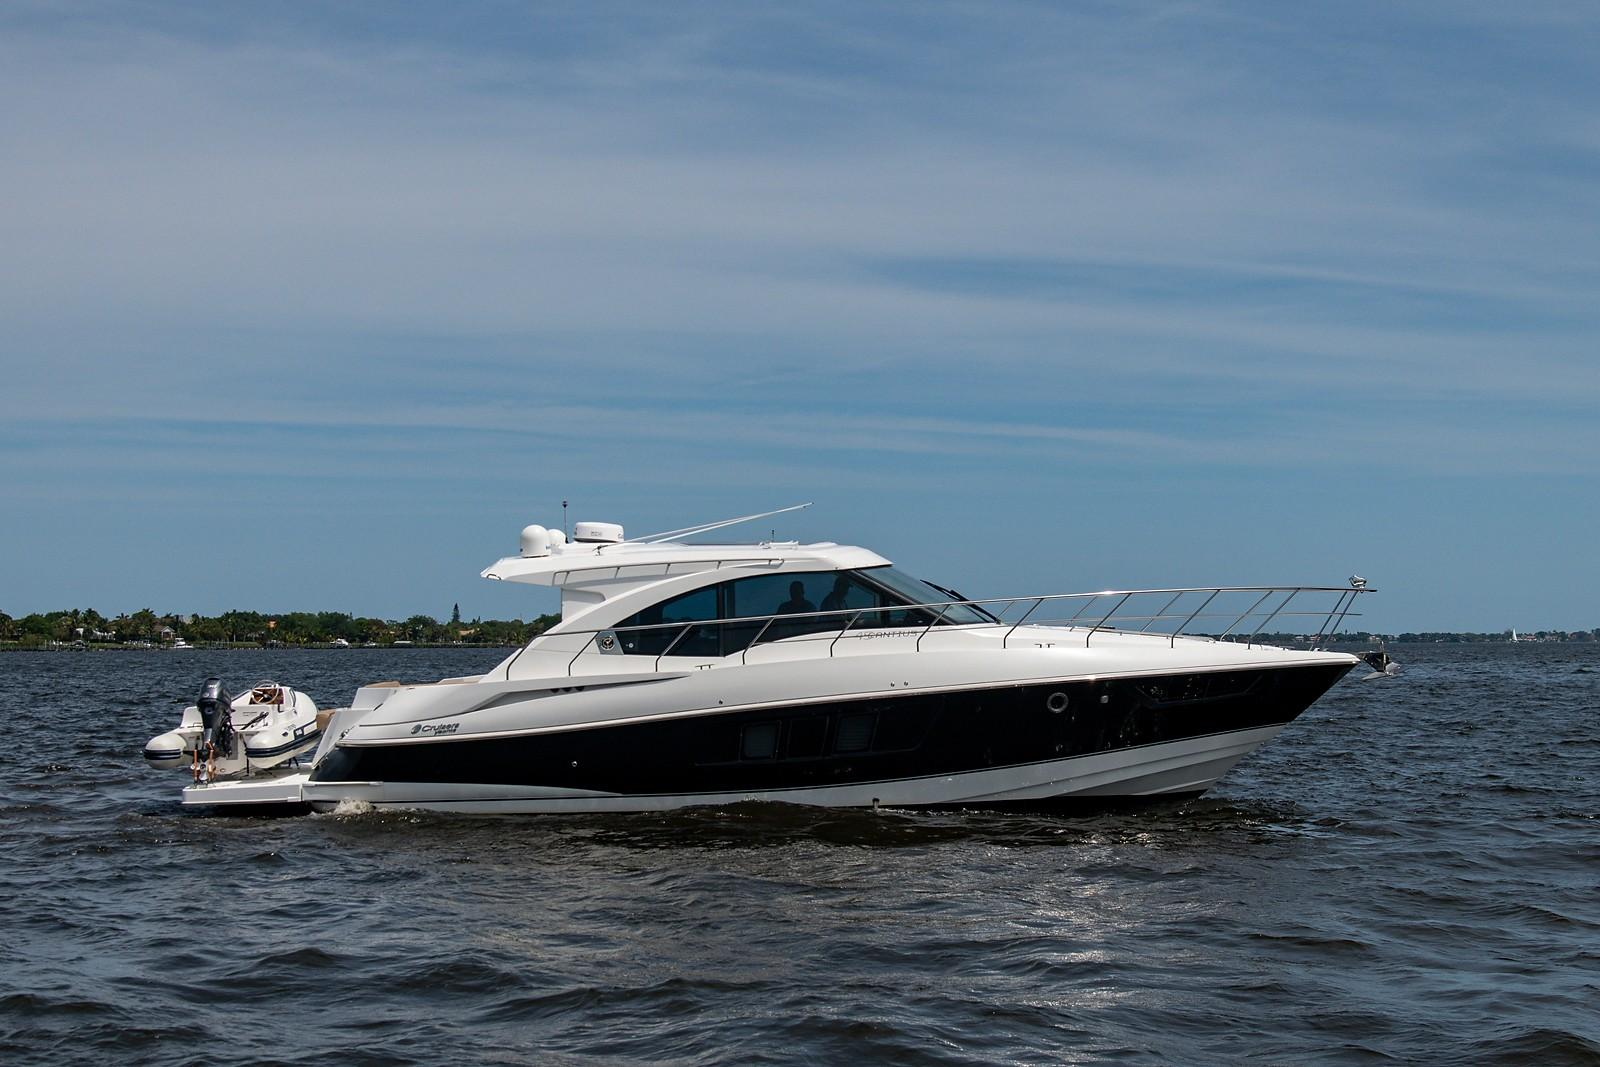 cruisers Yachts for Sale Ranging from 40' to 45' | Galati Yachts